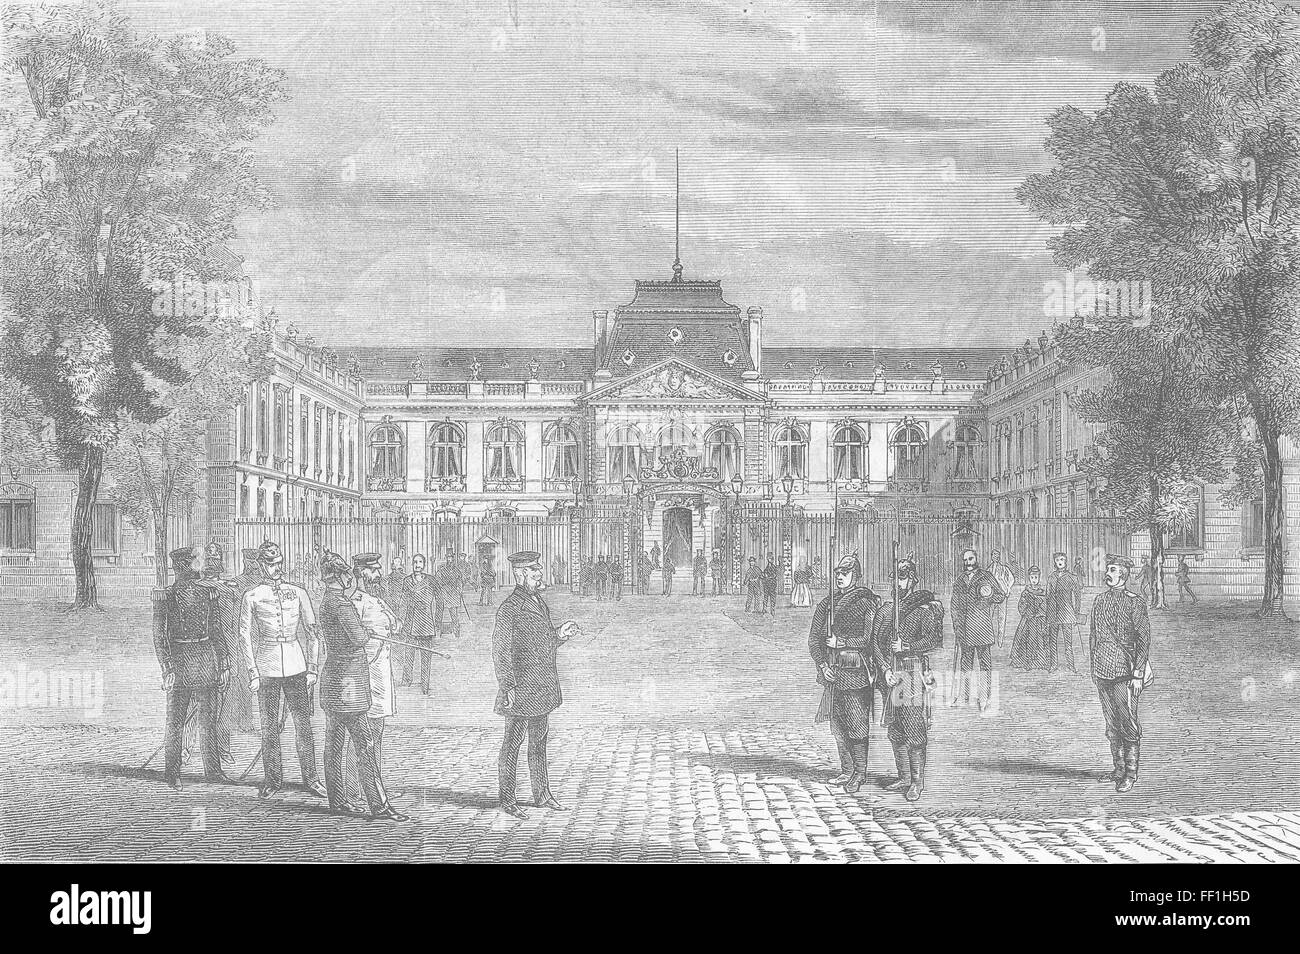 GERMANY Headquarters of the King Prussia at Versailles 1870. Illustrated London News - Stock Image